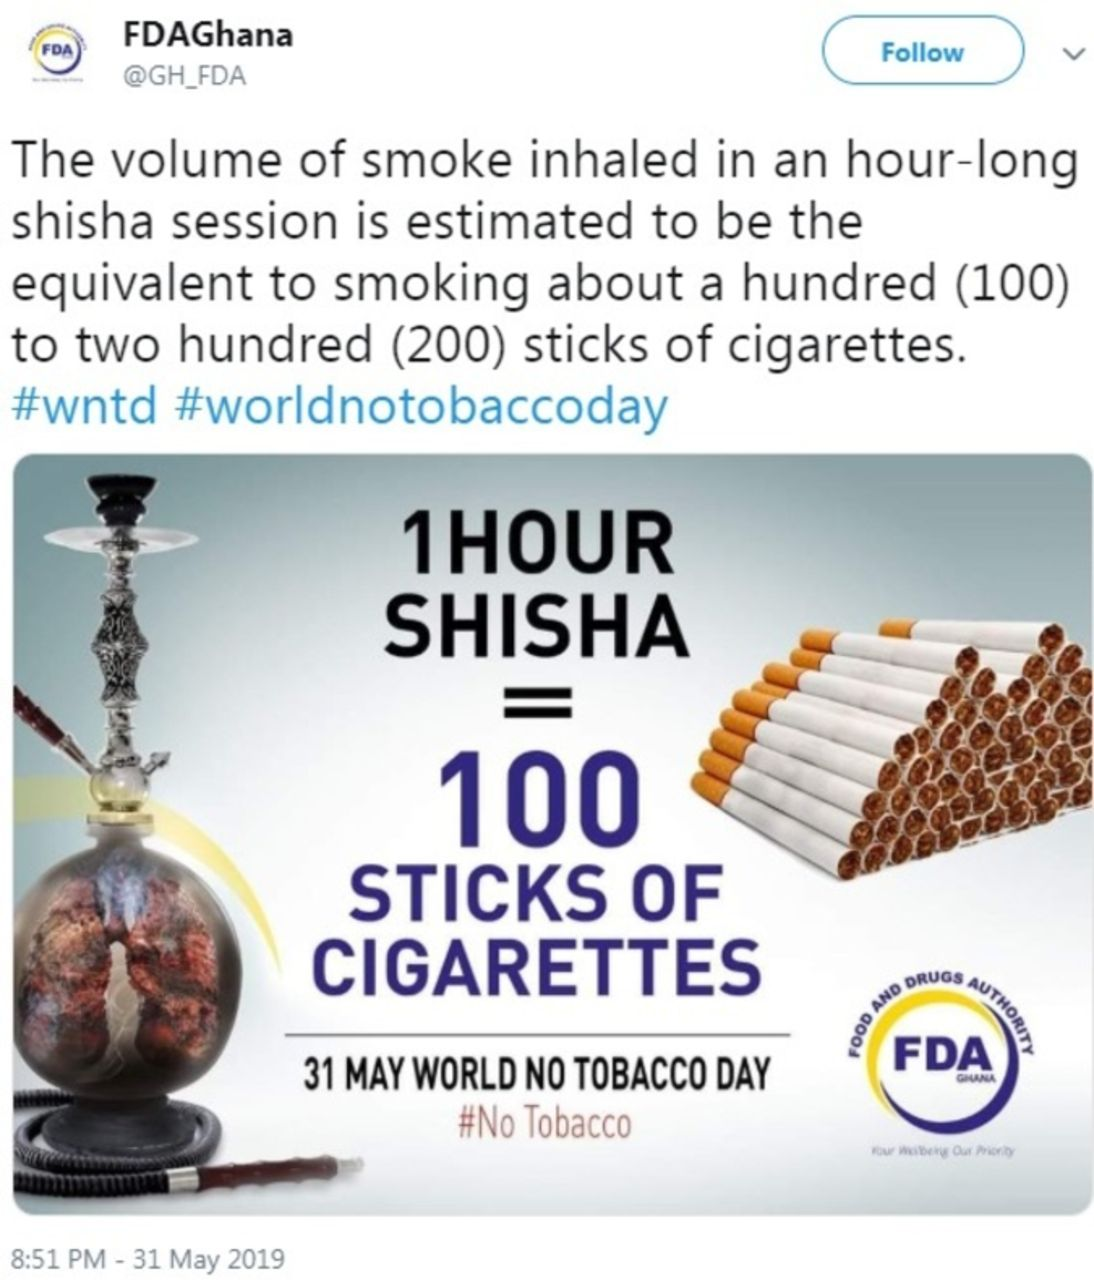 Worldwide News and Comment | Tobacco Control